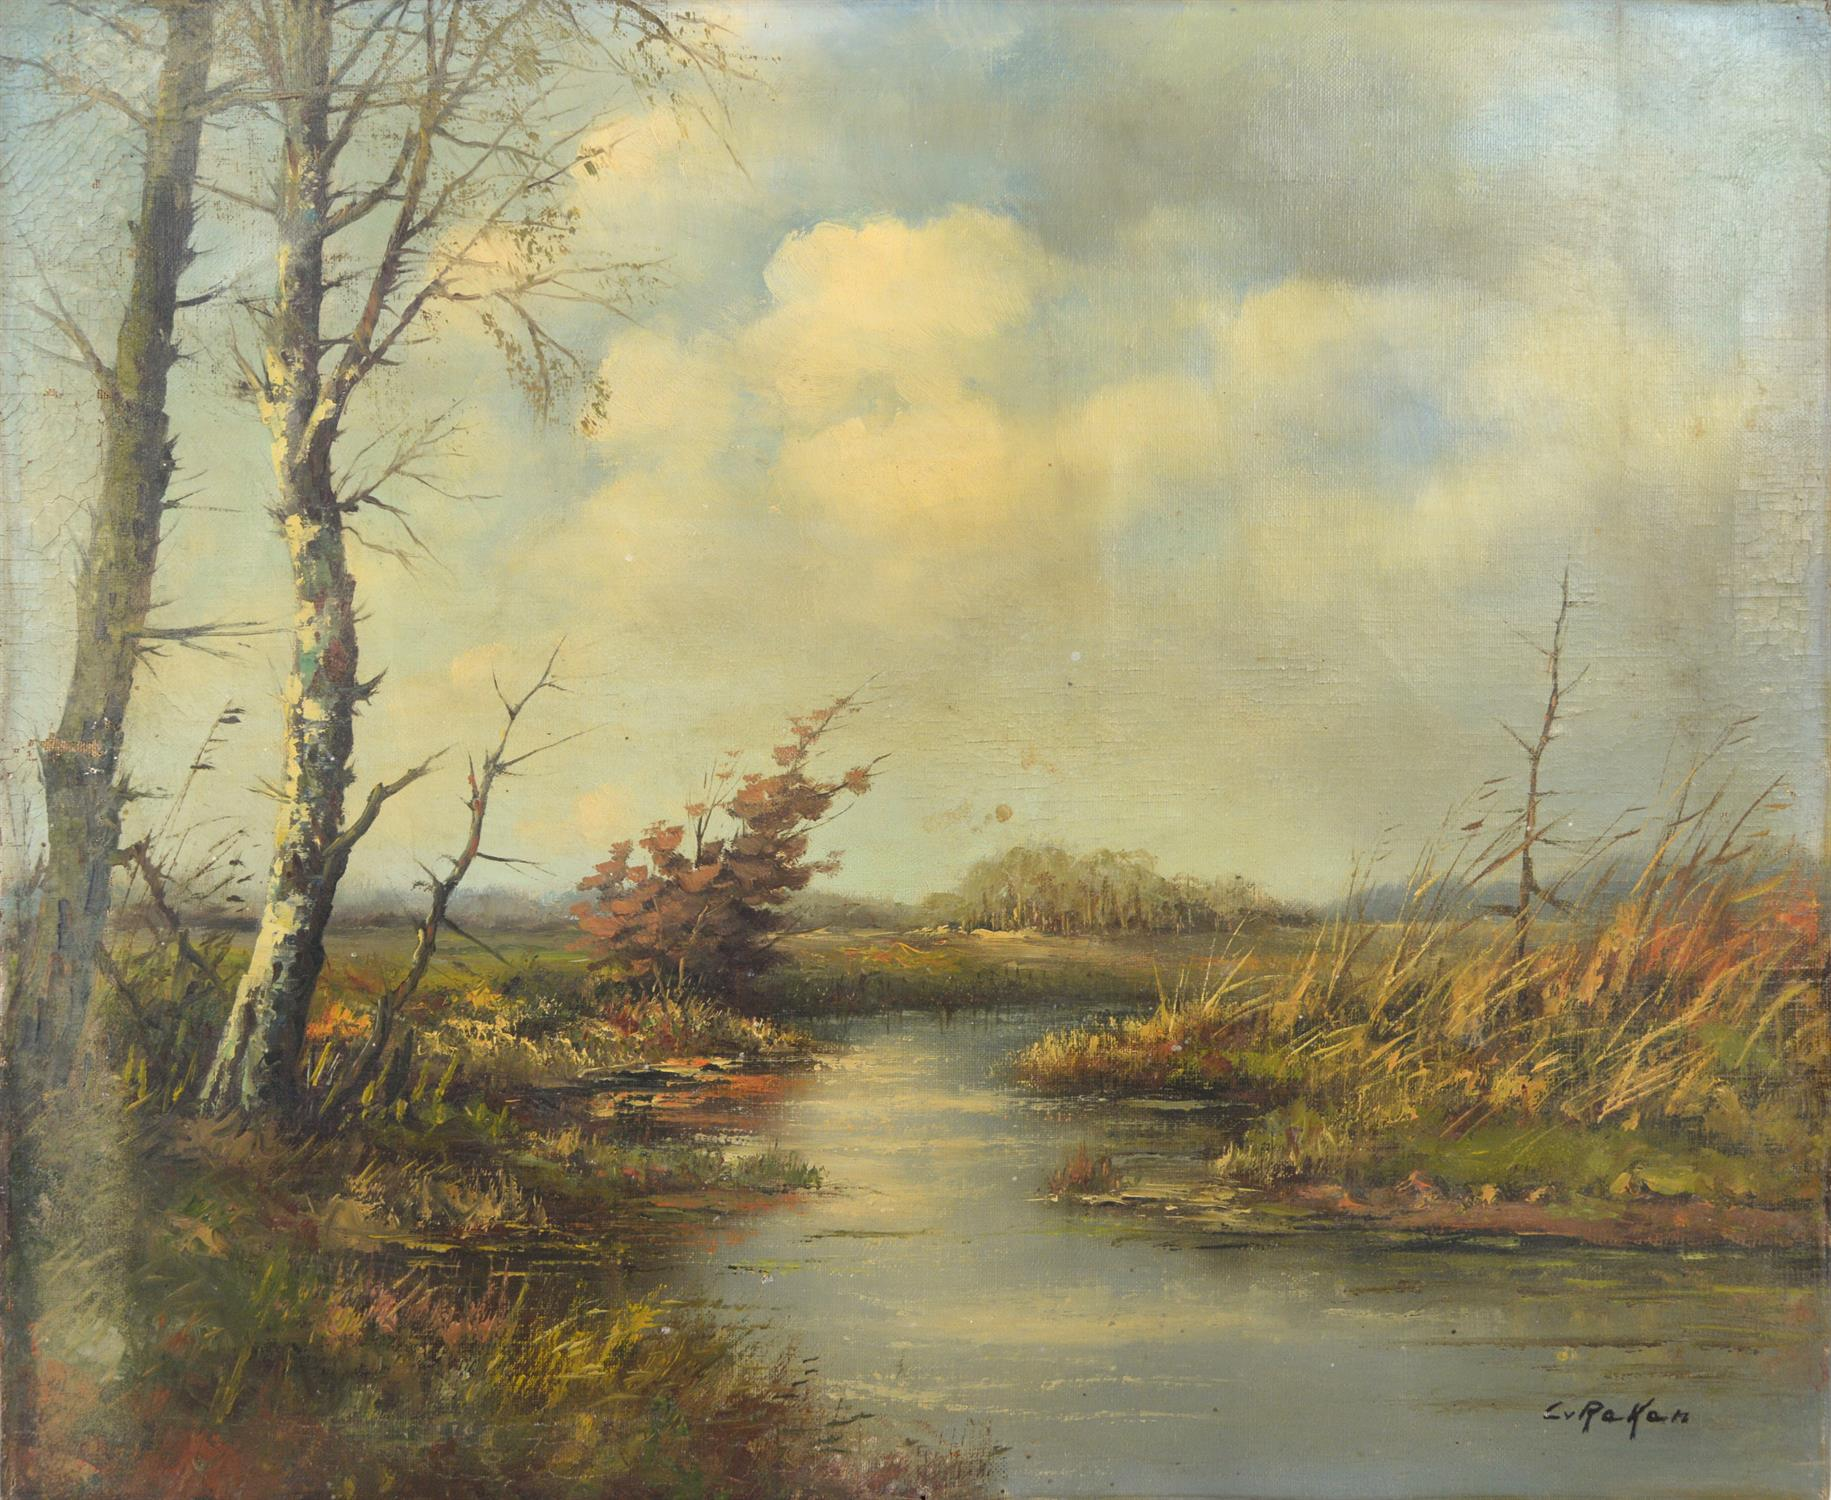 Cor Van Reken (Dutch, 1878-1959), View of a river, oil on canvas, signed lower right, 50 x 60cm